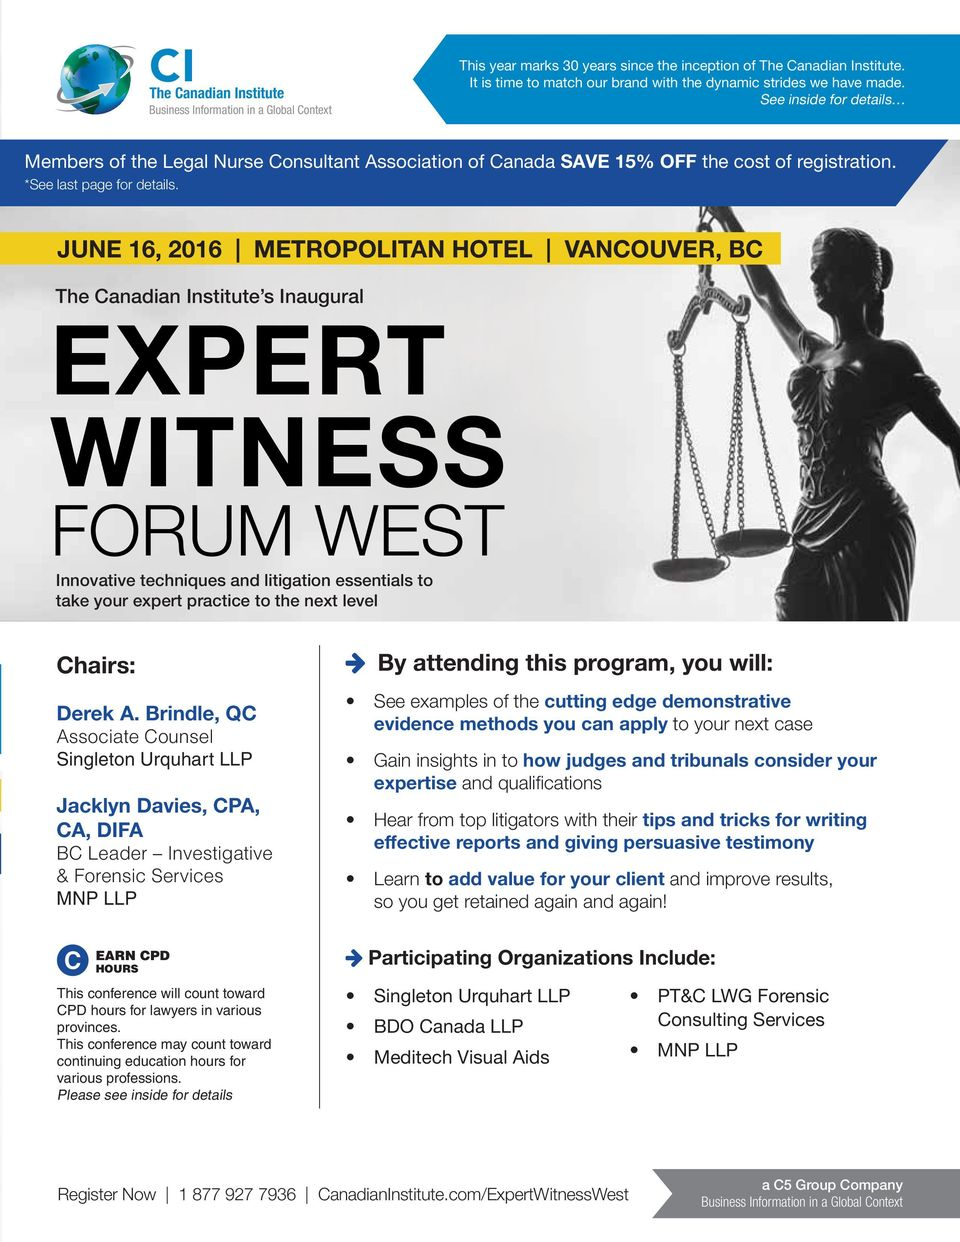 JUNE 16, 2016 METROPOLITAN HOTEL VANCOUVER, BC s Inaugural EXPERT WITNESS FORUM WEST Innovative techniques and litigation essentials to take your expert practice to the next level Chairs: Derek A.